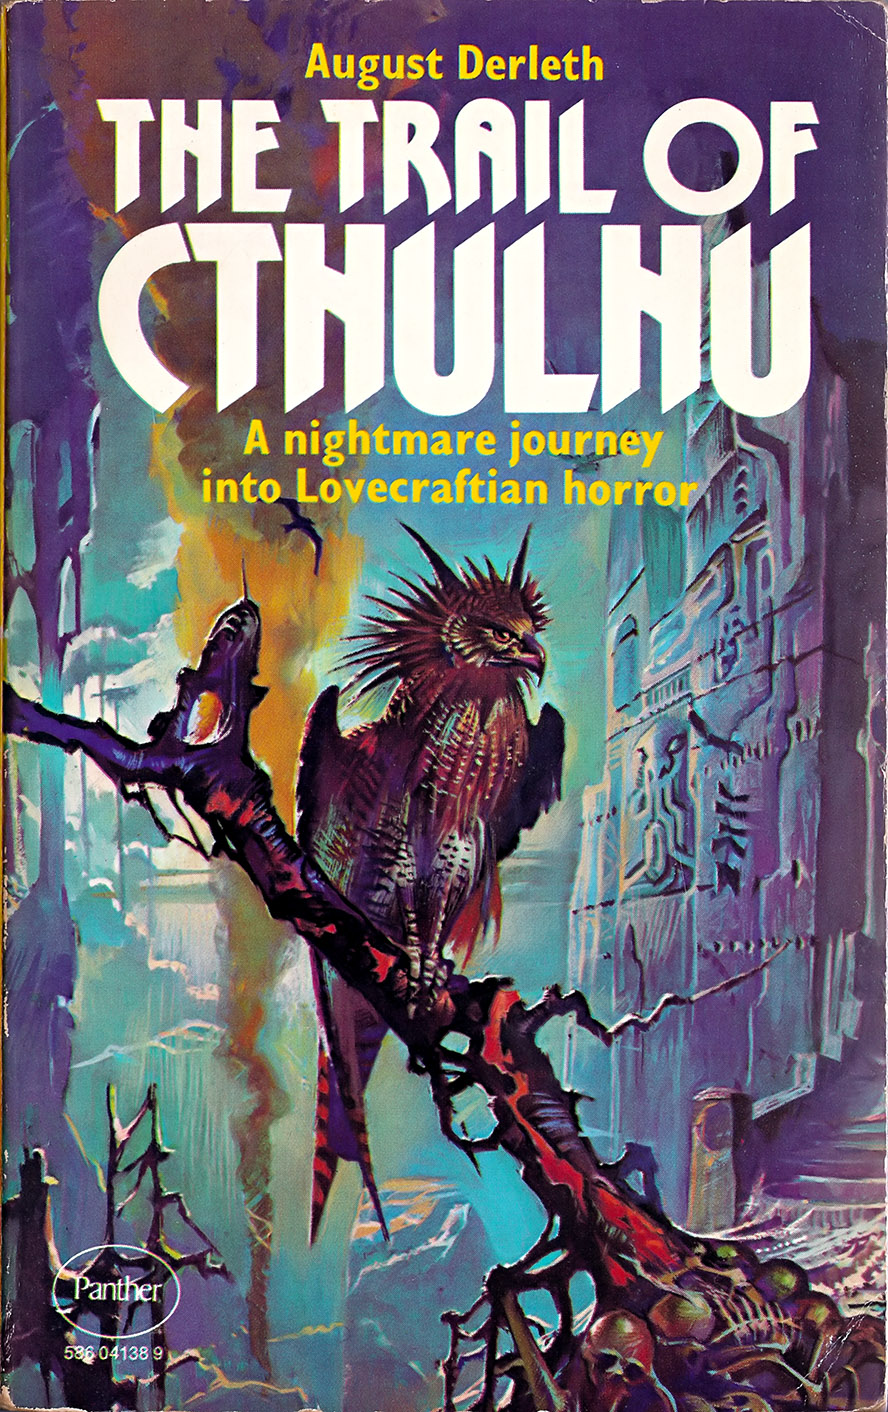 Bruce Pennington - The Trail of Cthulhu, 1976